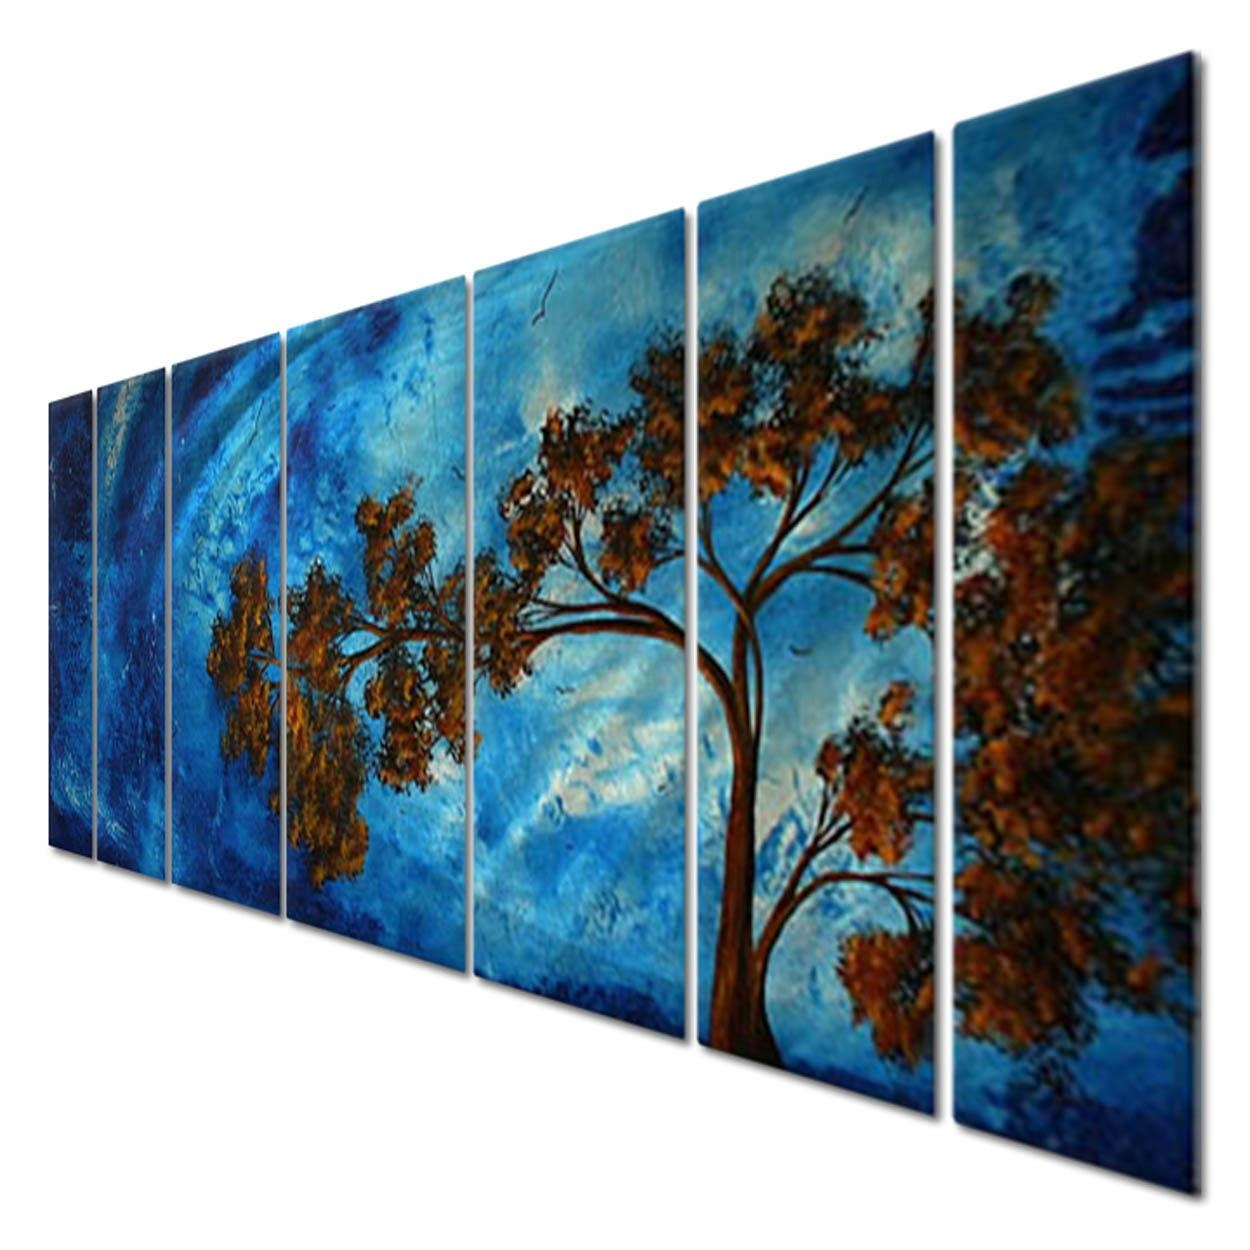 Modern Metal Wall Art Home Decor Megan Duncanson To The Sky With Regard To Megan Duncanson Metal Wall Art (Image 11 of 20)